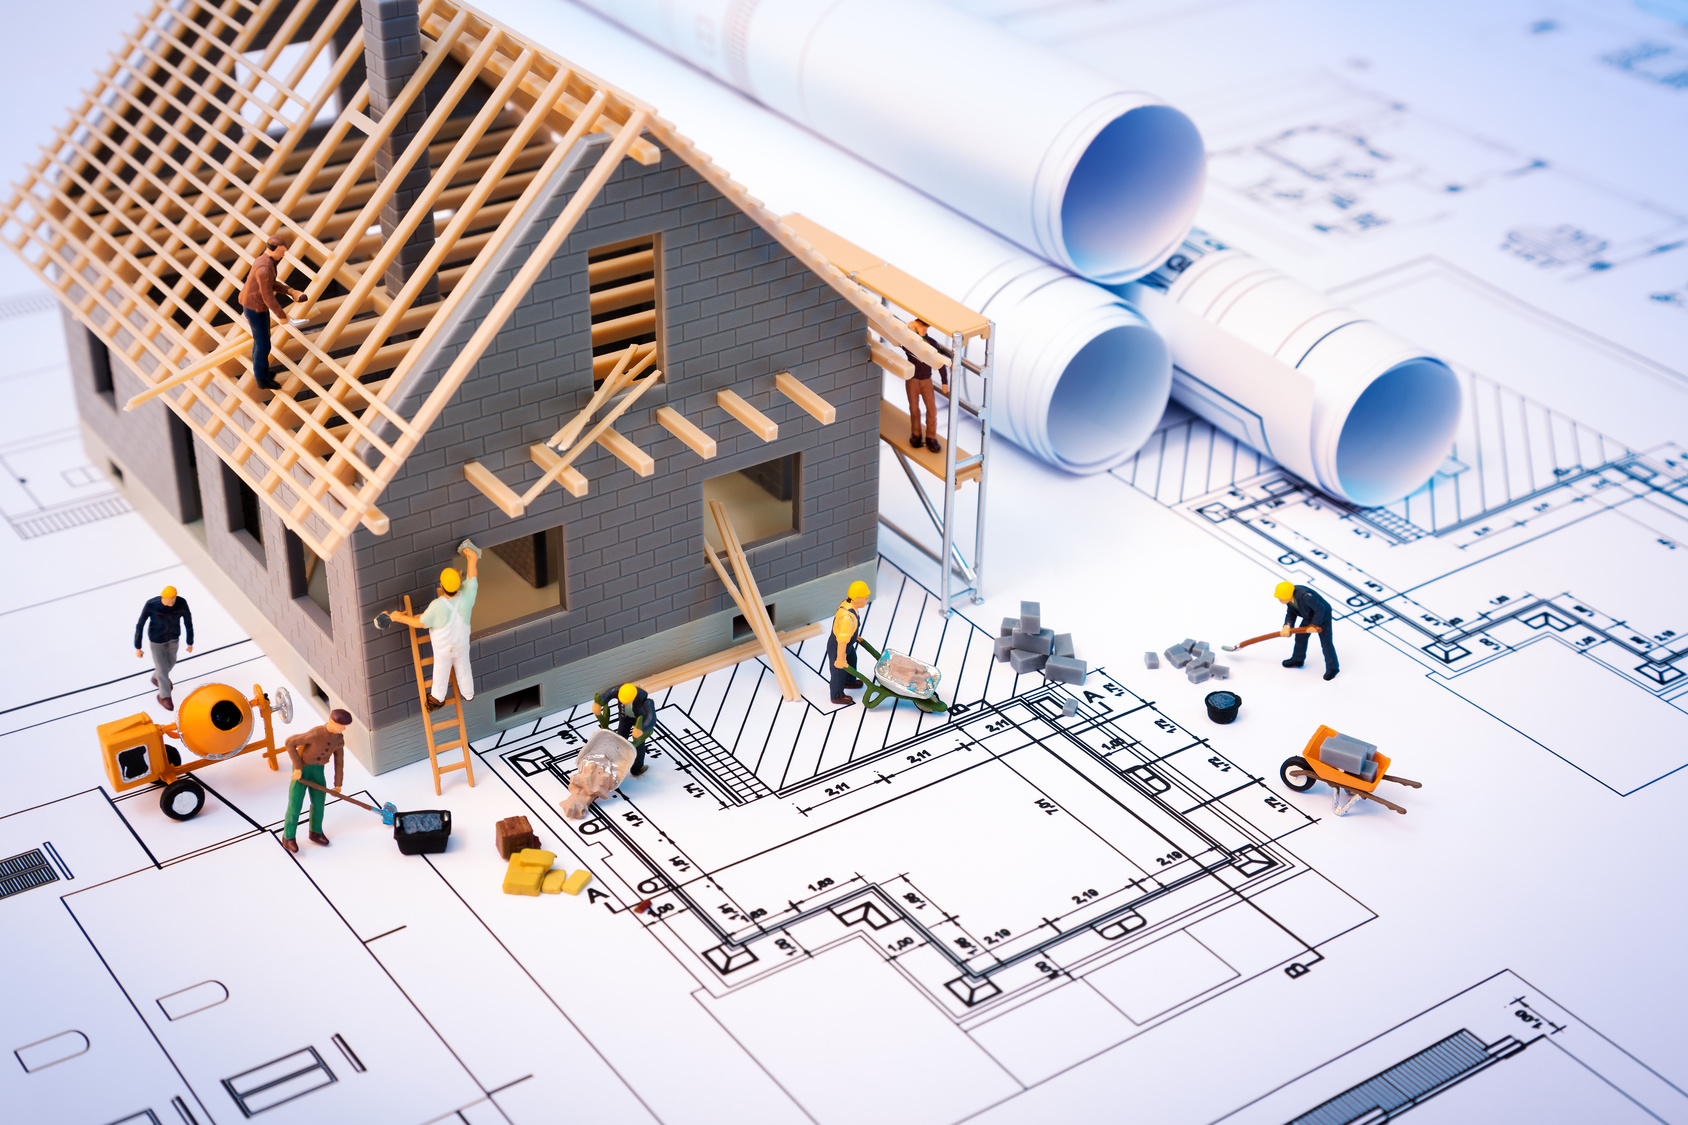 Urban planning, building and real estate law